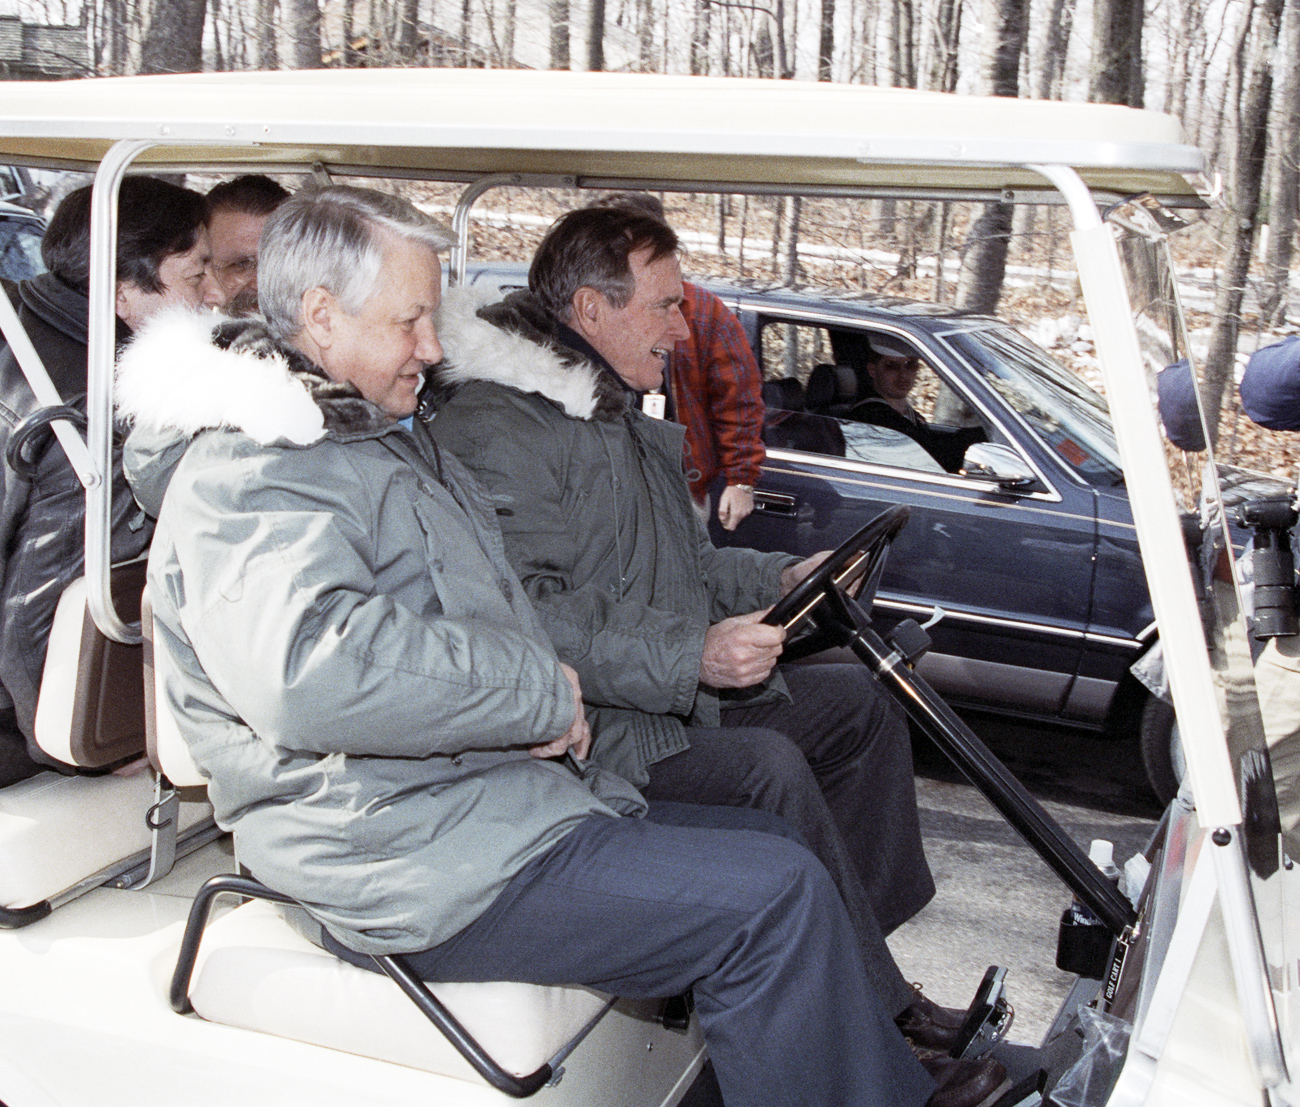 Russian President Boris Yeltsin oversaw the official end of the Cold War on Feb. 1, 1992 at a meeting with George Bush. Photo: Russian President Boris Yeltsin (left) and U.S. President George Bush (right) at Camp David.